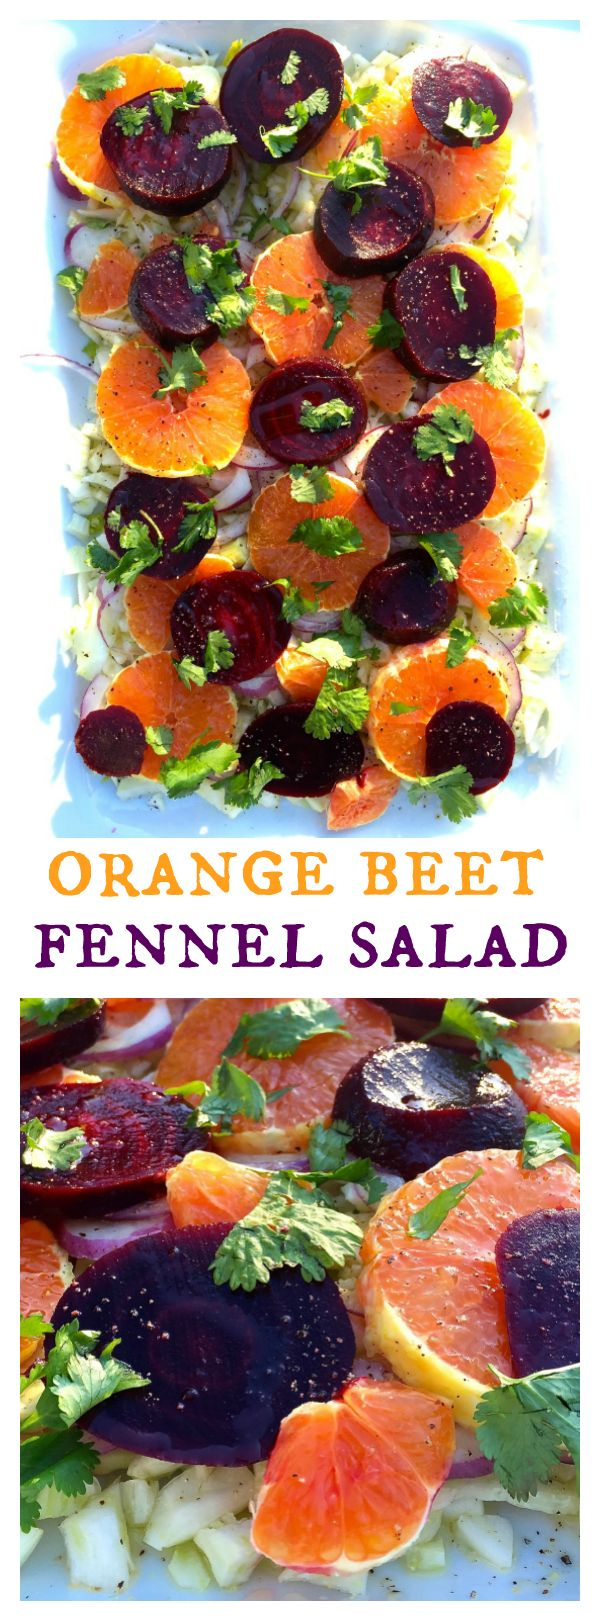 orange beet fennel salad - Ina Garten Fennel Salad